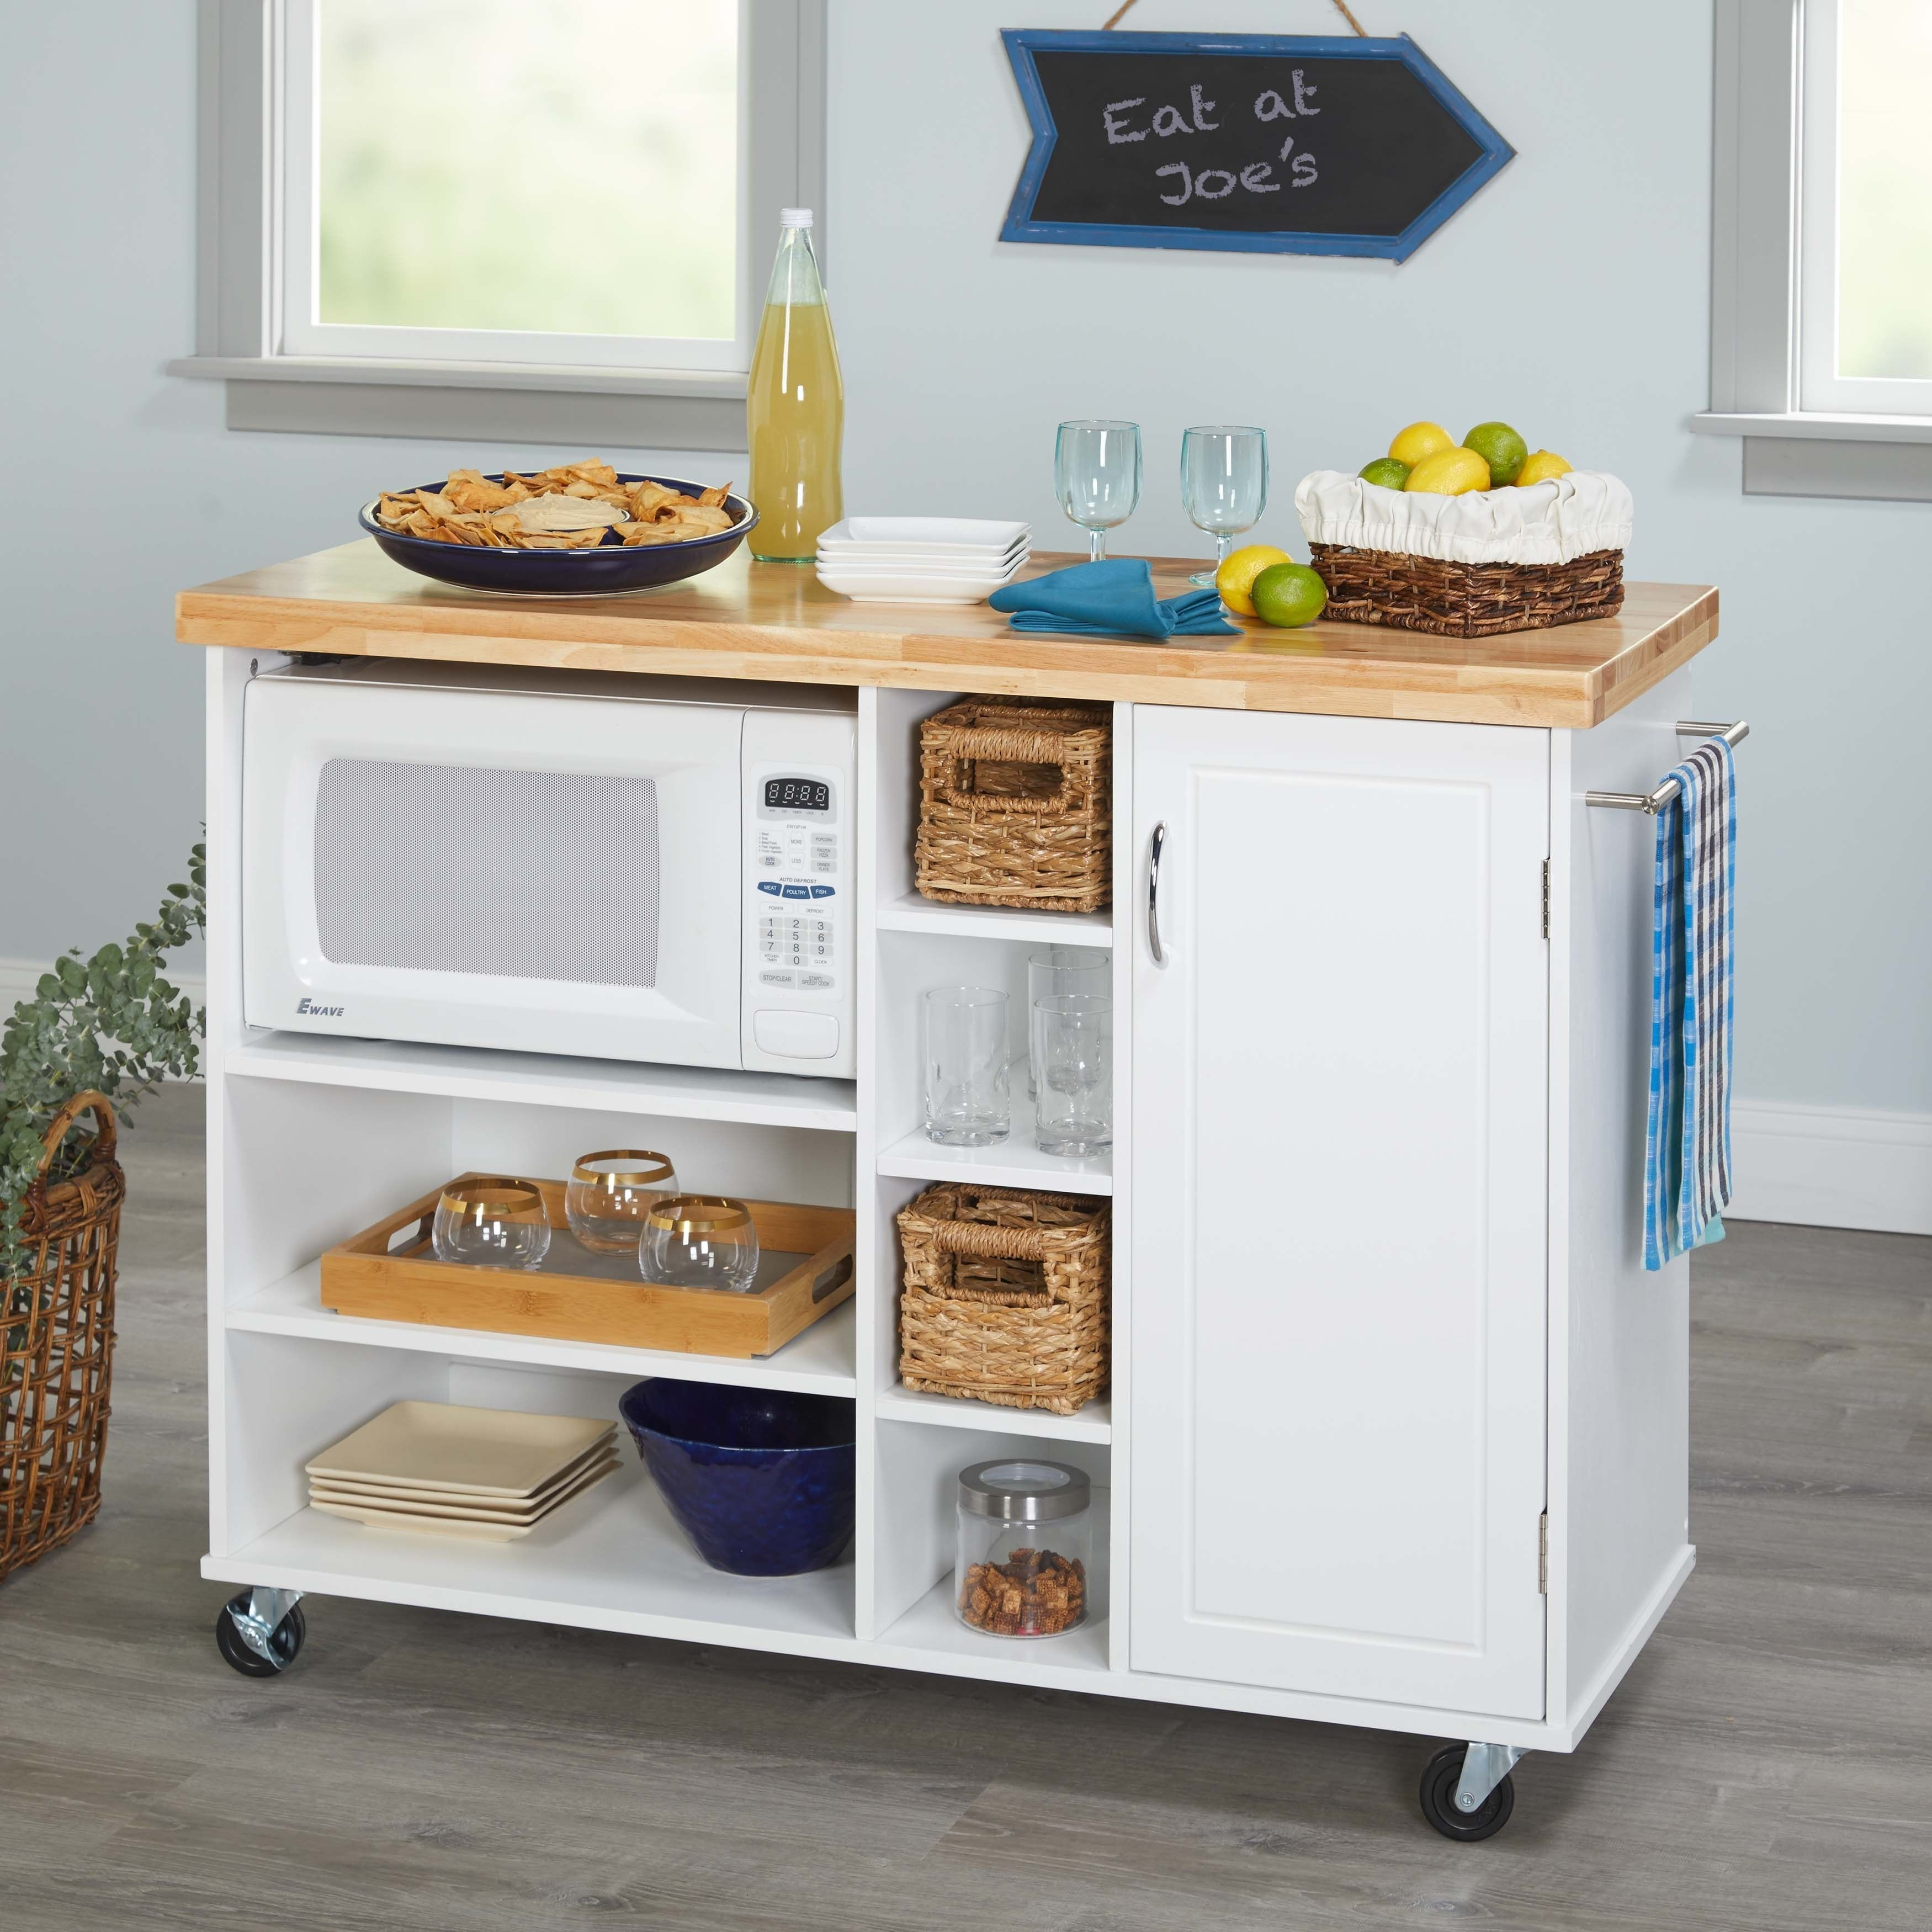 Simple Living Rolling Galvin Microwave Cart (White